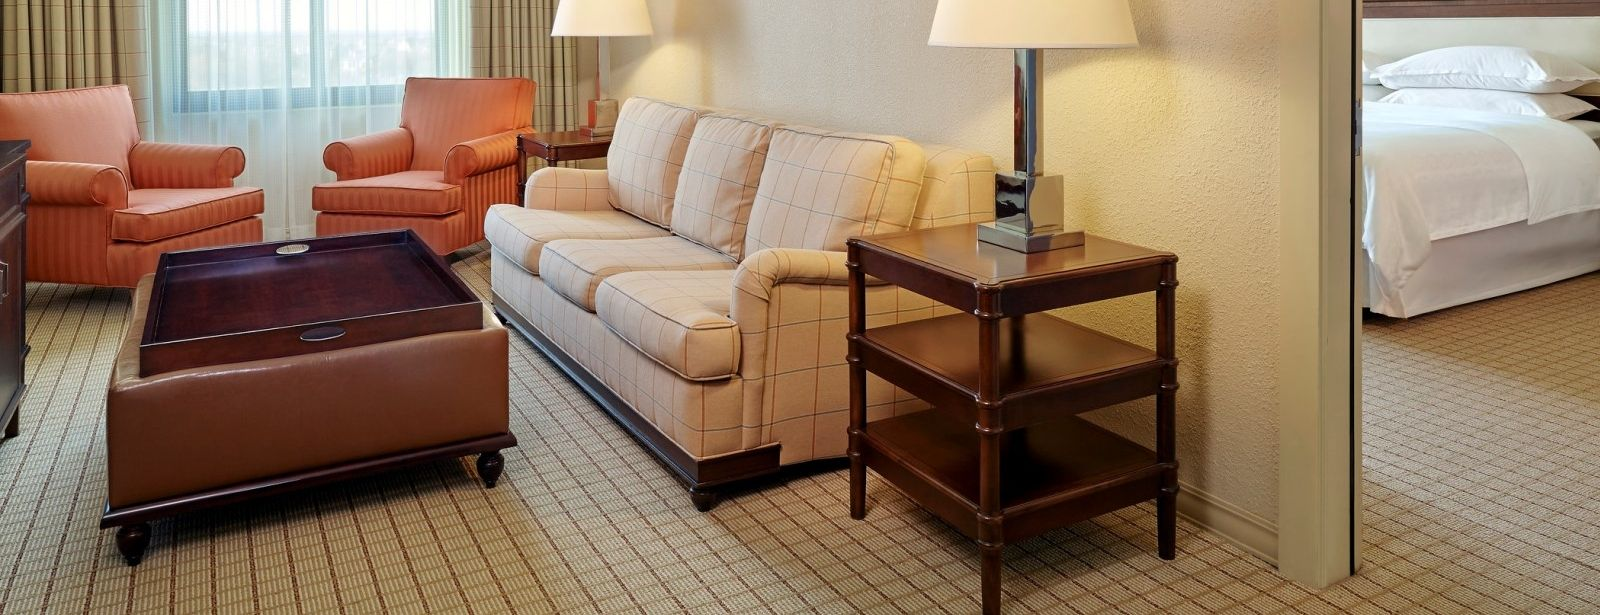 Executive Suite with a King Bed at Sheraton Stonebriar Hotel